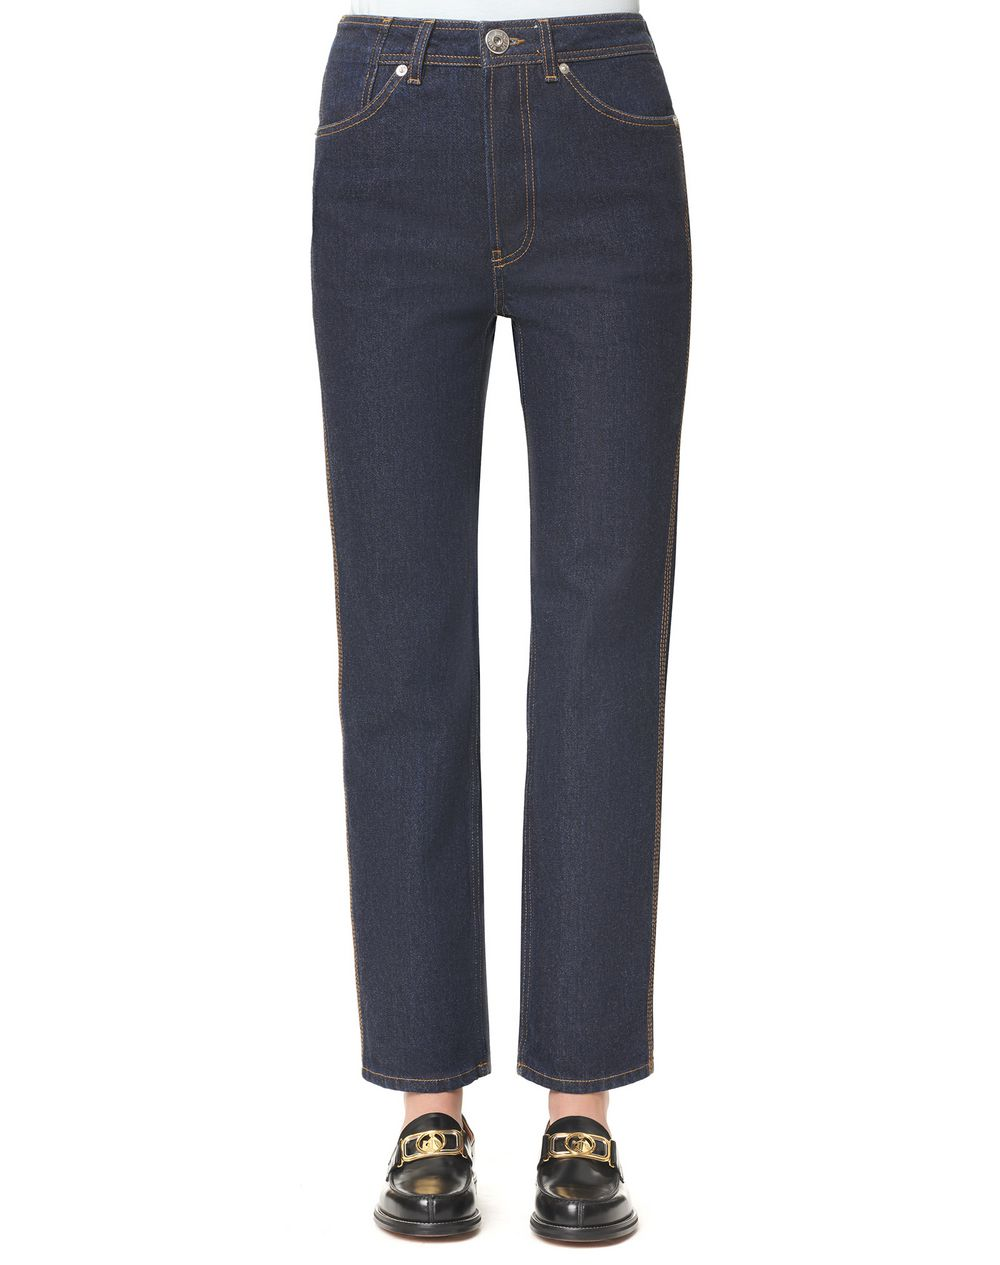 High-waisted denim trousers - Lanvin